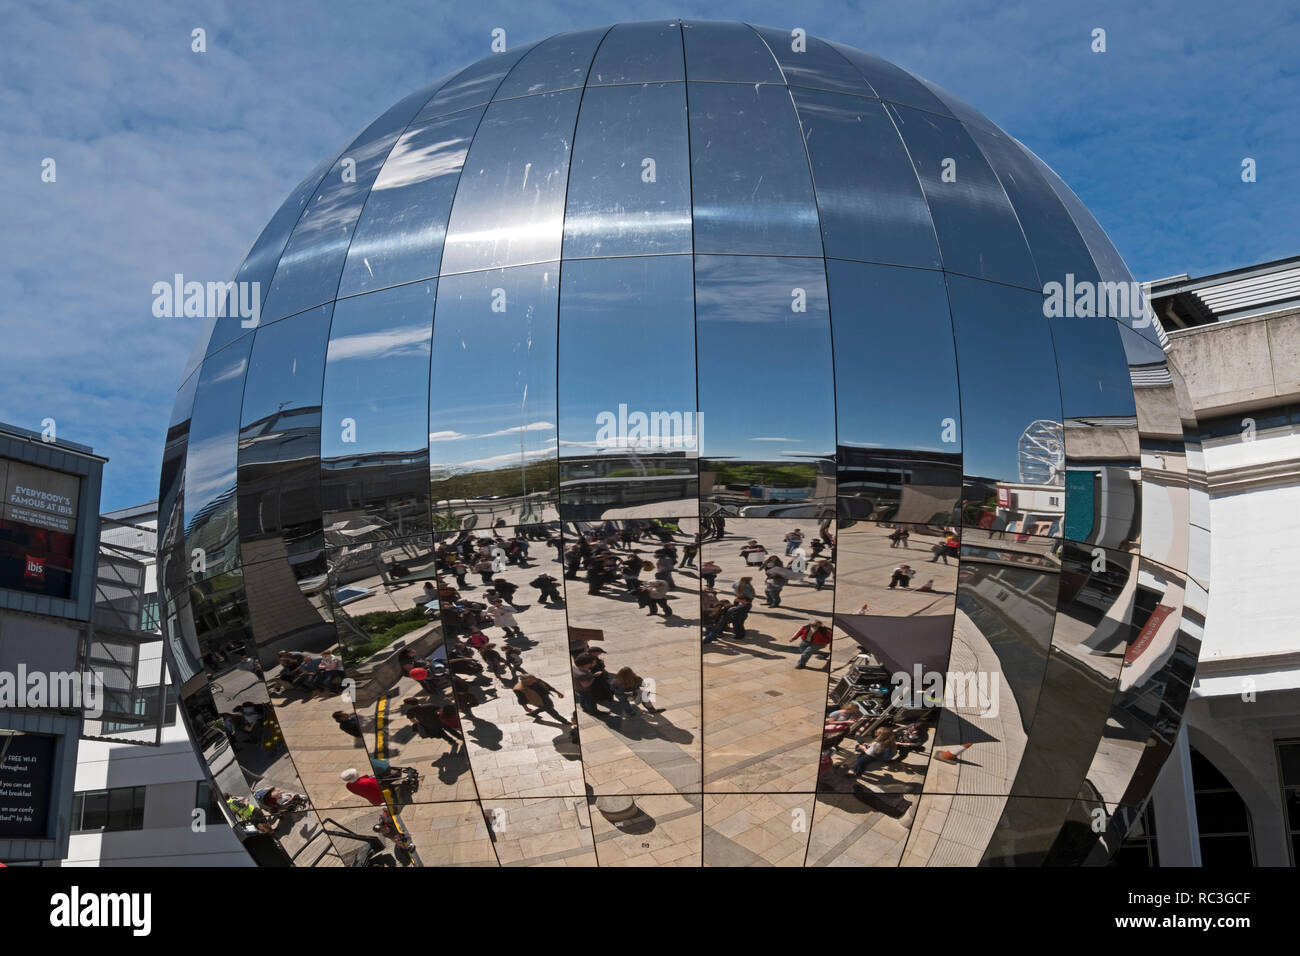 Partcipants in the March for Science are reflected in the dome of the planetarium at the At-Bristol science centre in Bristol, UK on 22 April 2017. - Stock Image